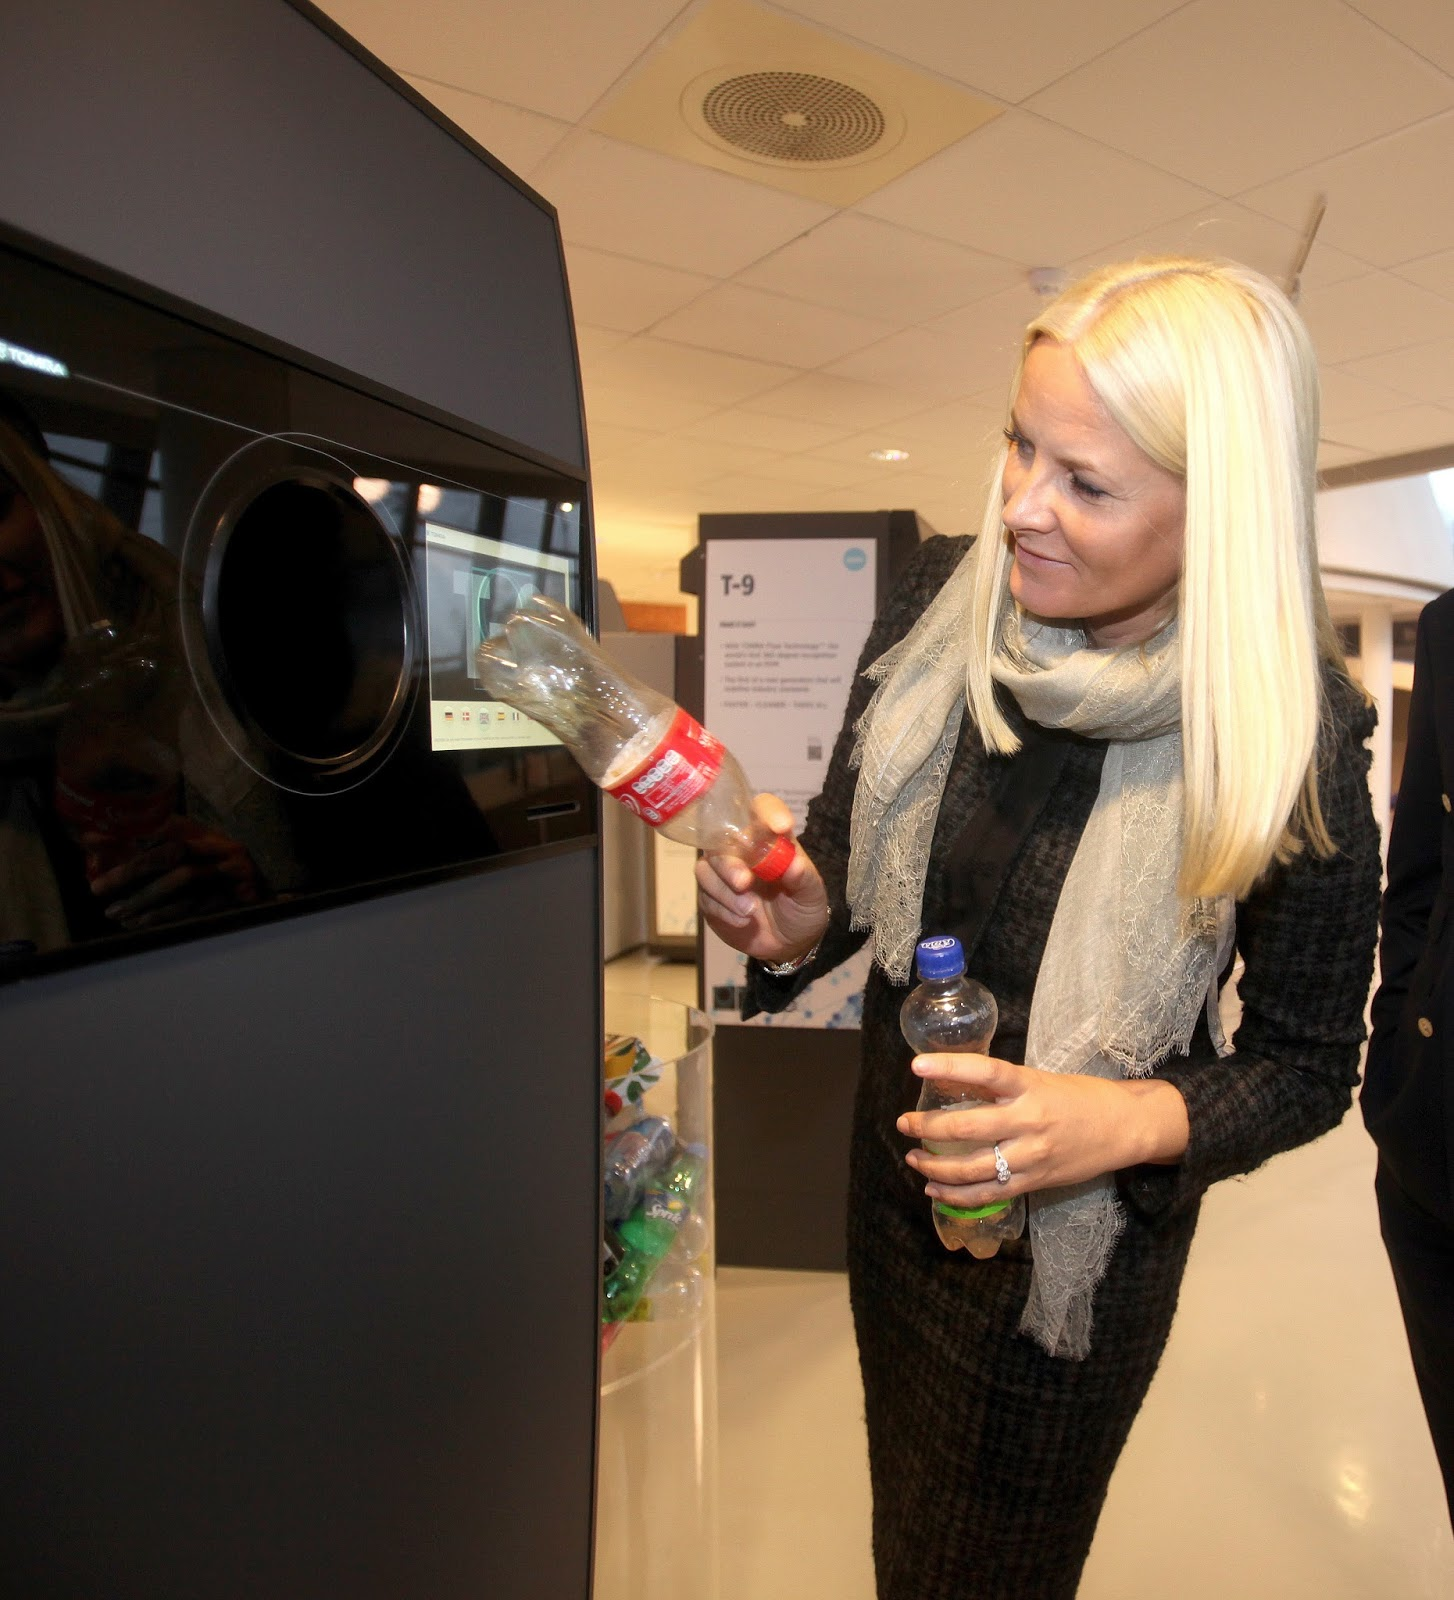 Princess Mette-Marit Monday visited RVM company Tomra